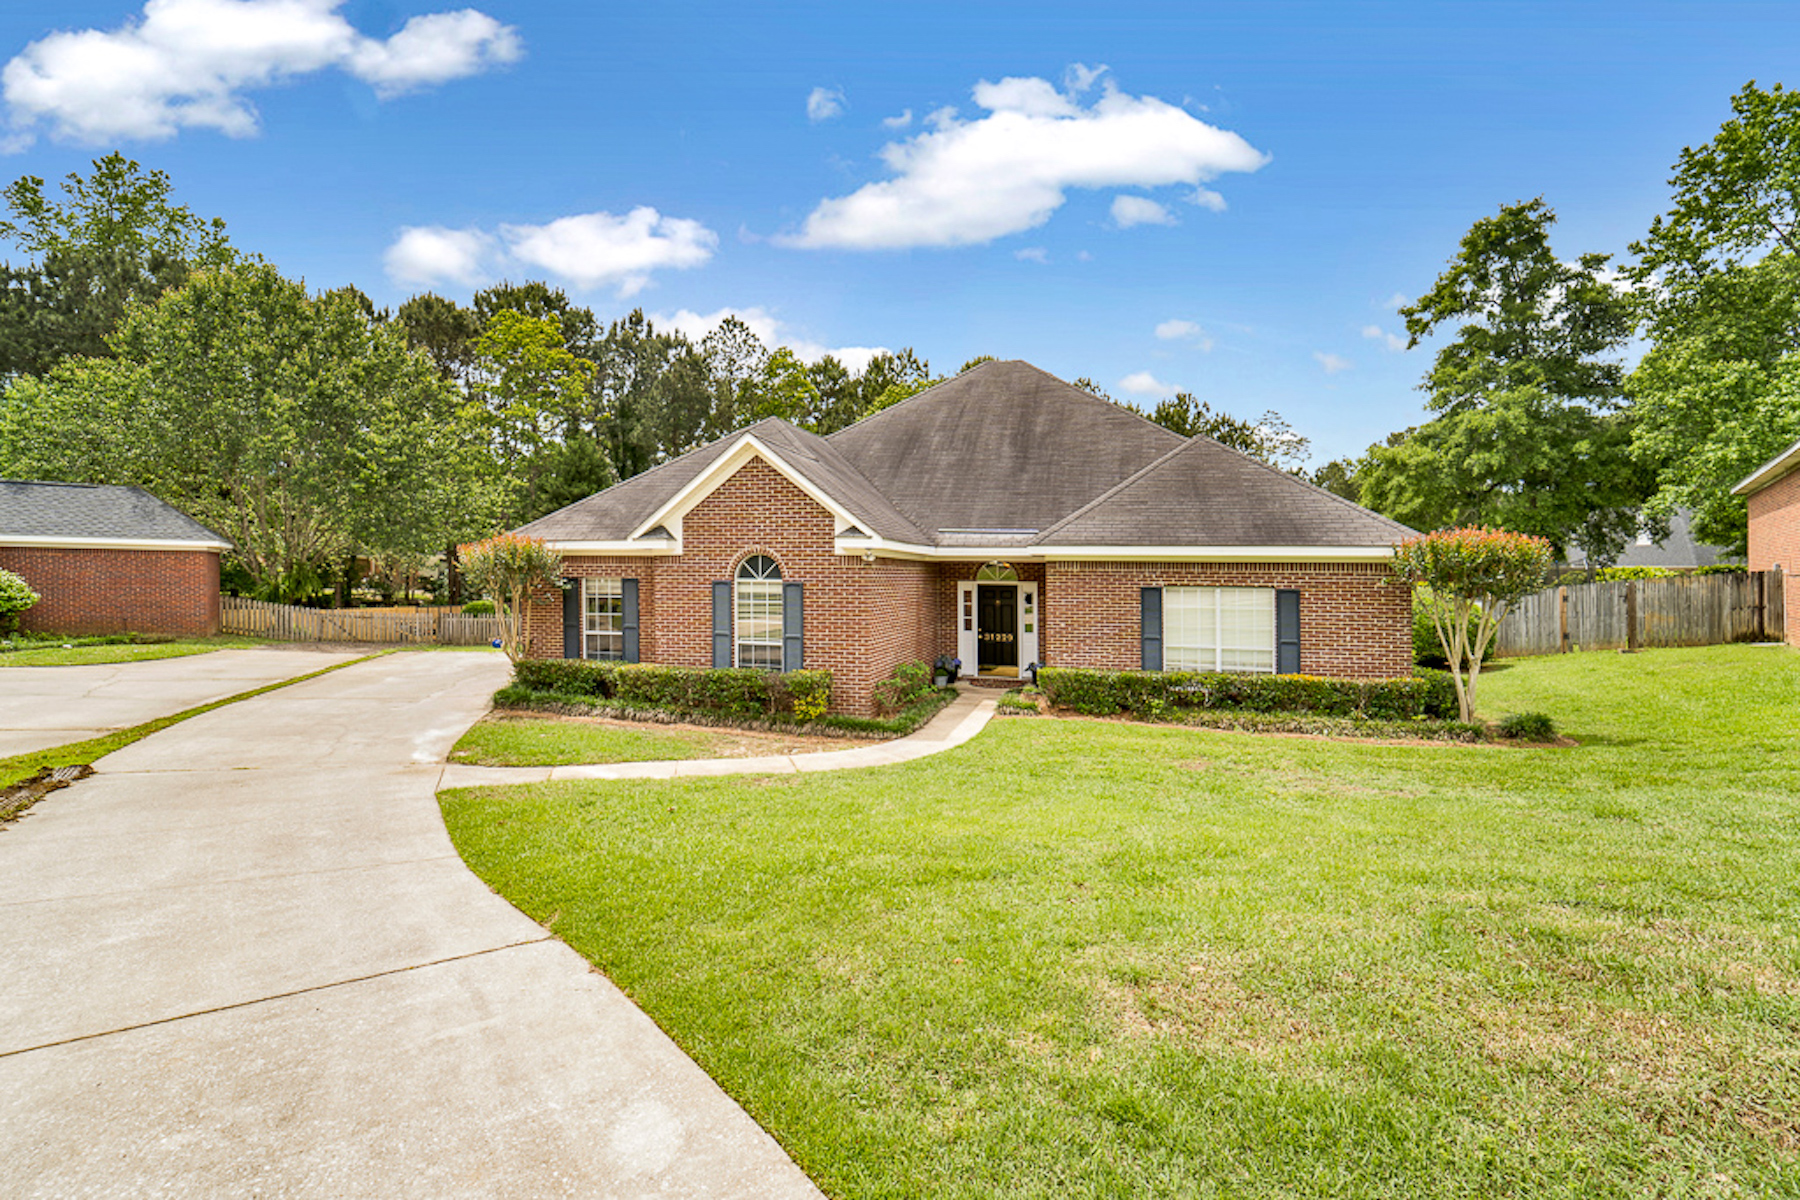 Single Family Home for Active at 31229 Live Oak Court Spanish Fort, Alabama 36527 United States